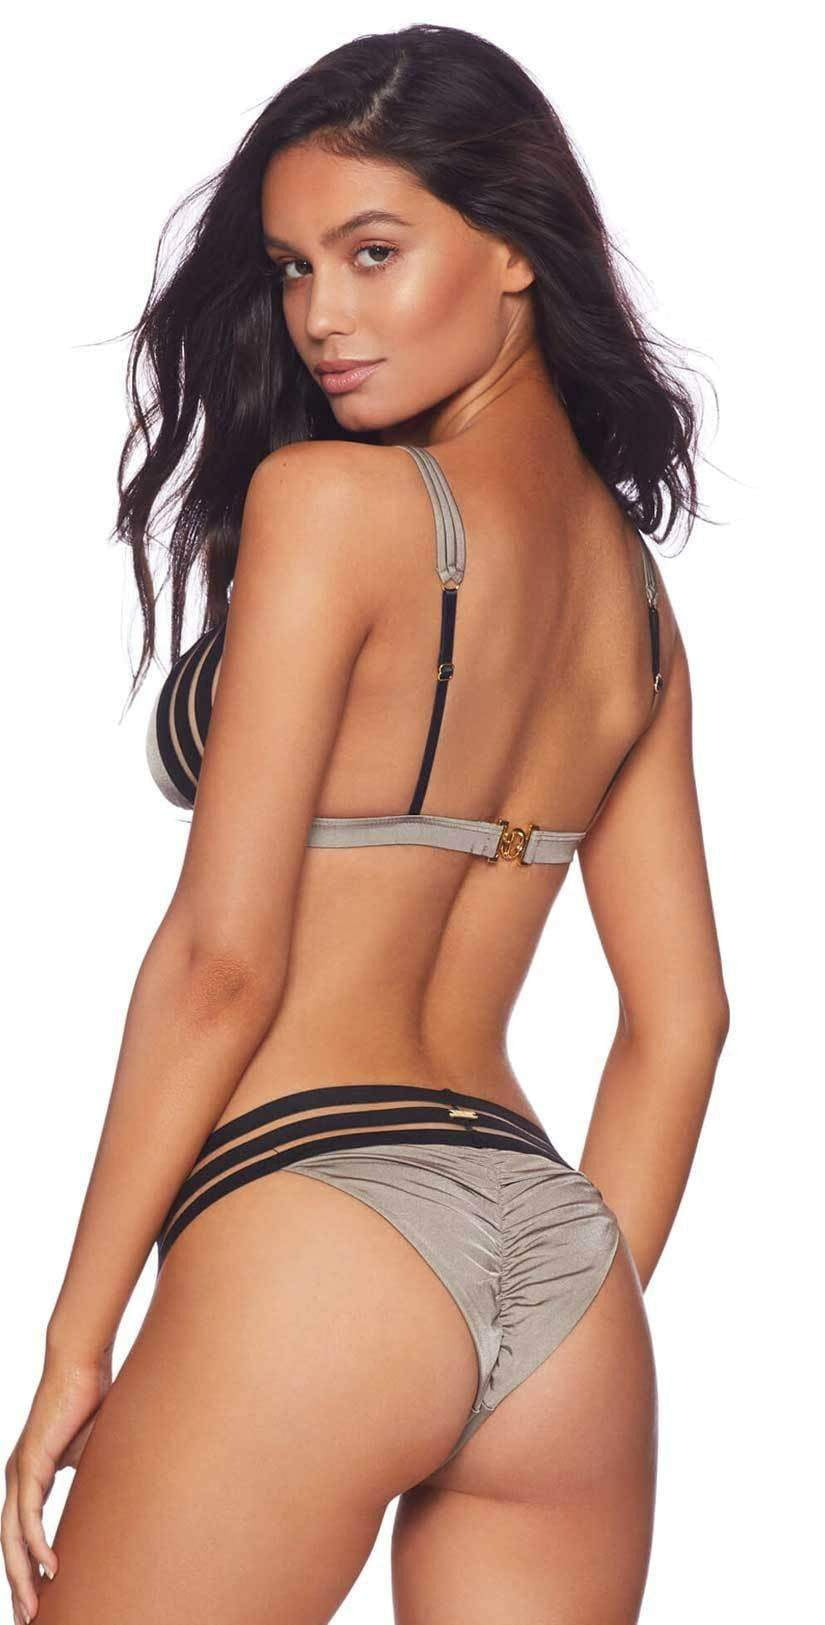 Beach Bunny Sheer Addiction Tri Top In Taupe B16125T1-TAUPE: